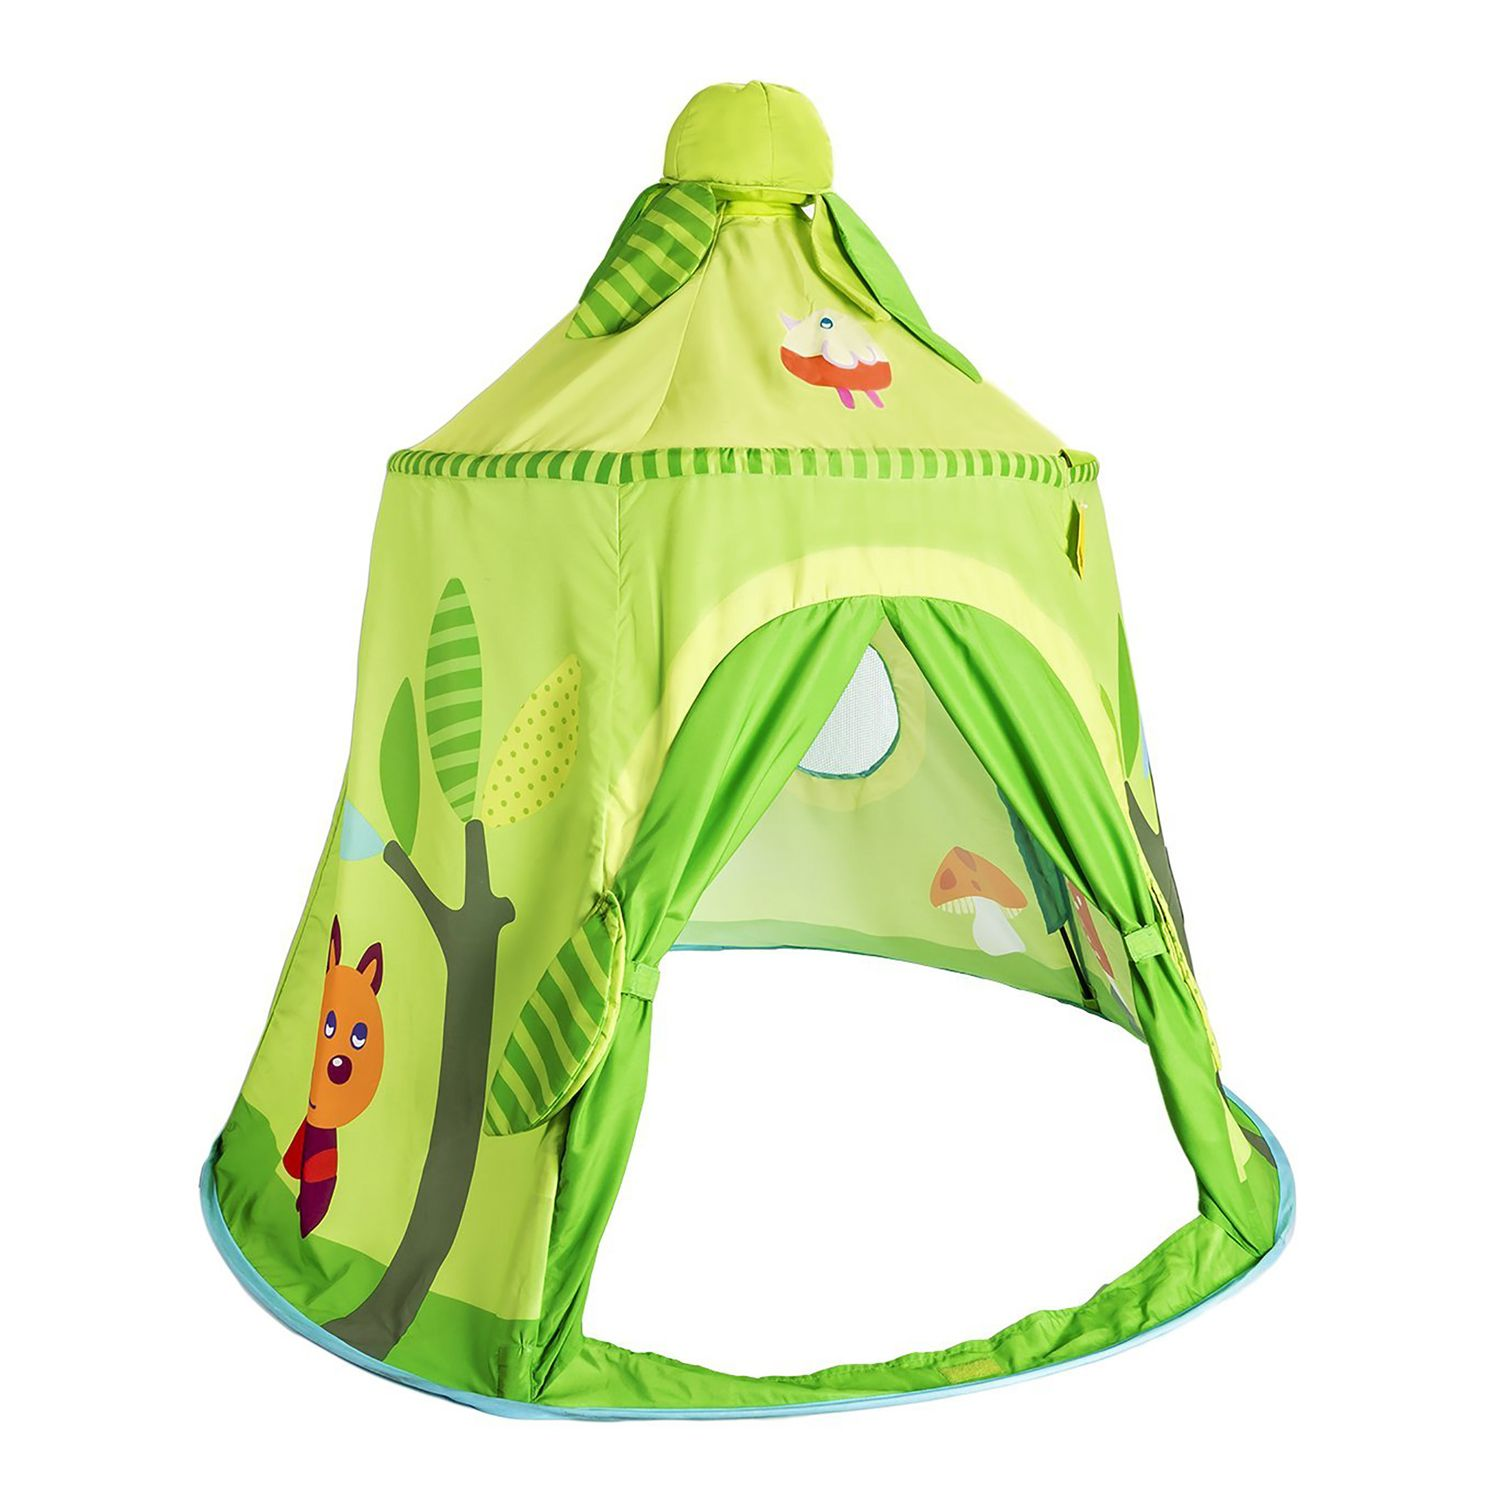 HABA Magic Wood Play Tent  sc 1 st  Kohlu0027s & HABA Magic Wood Play Tent | null